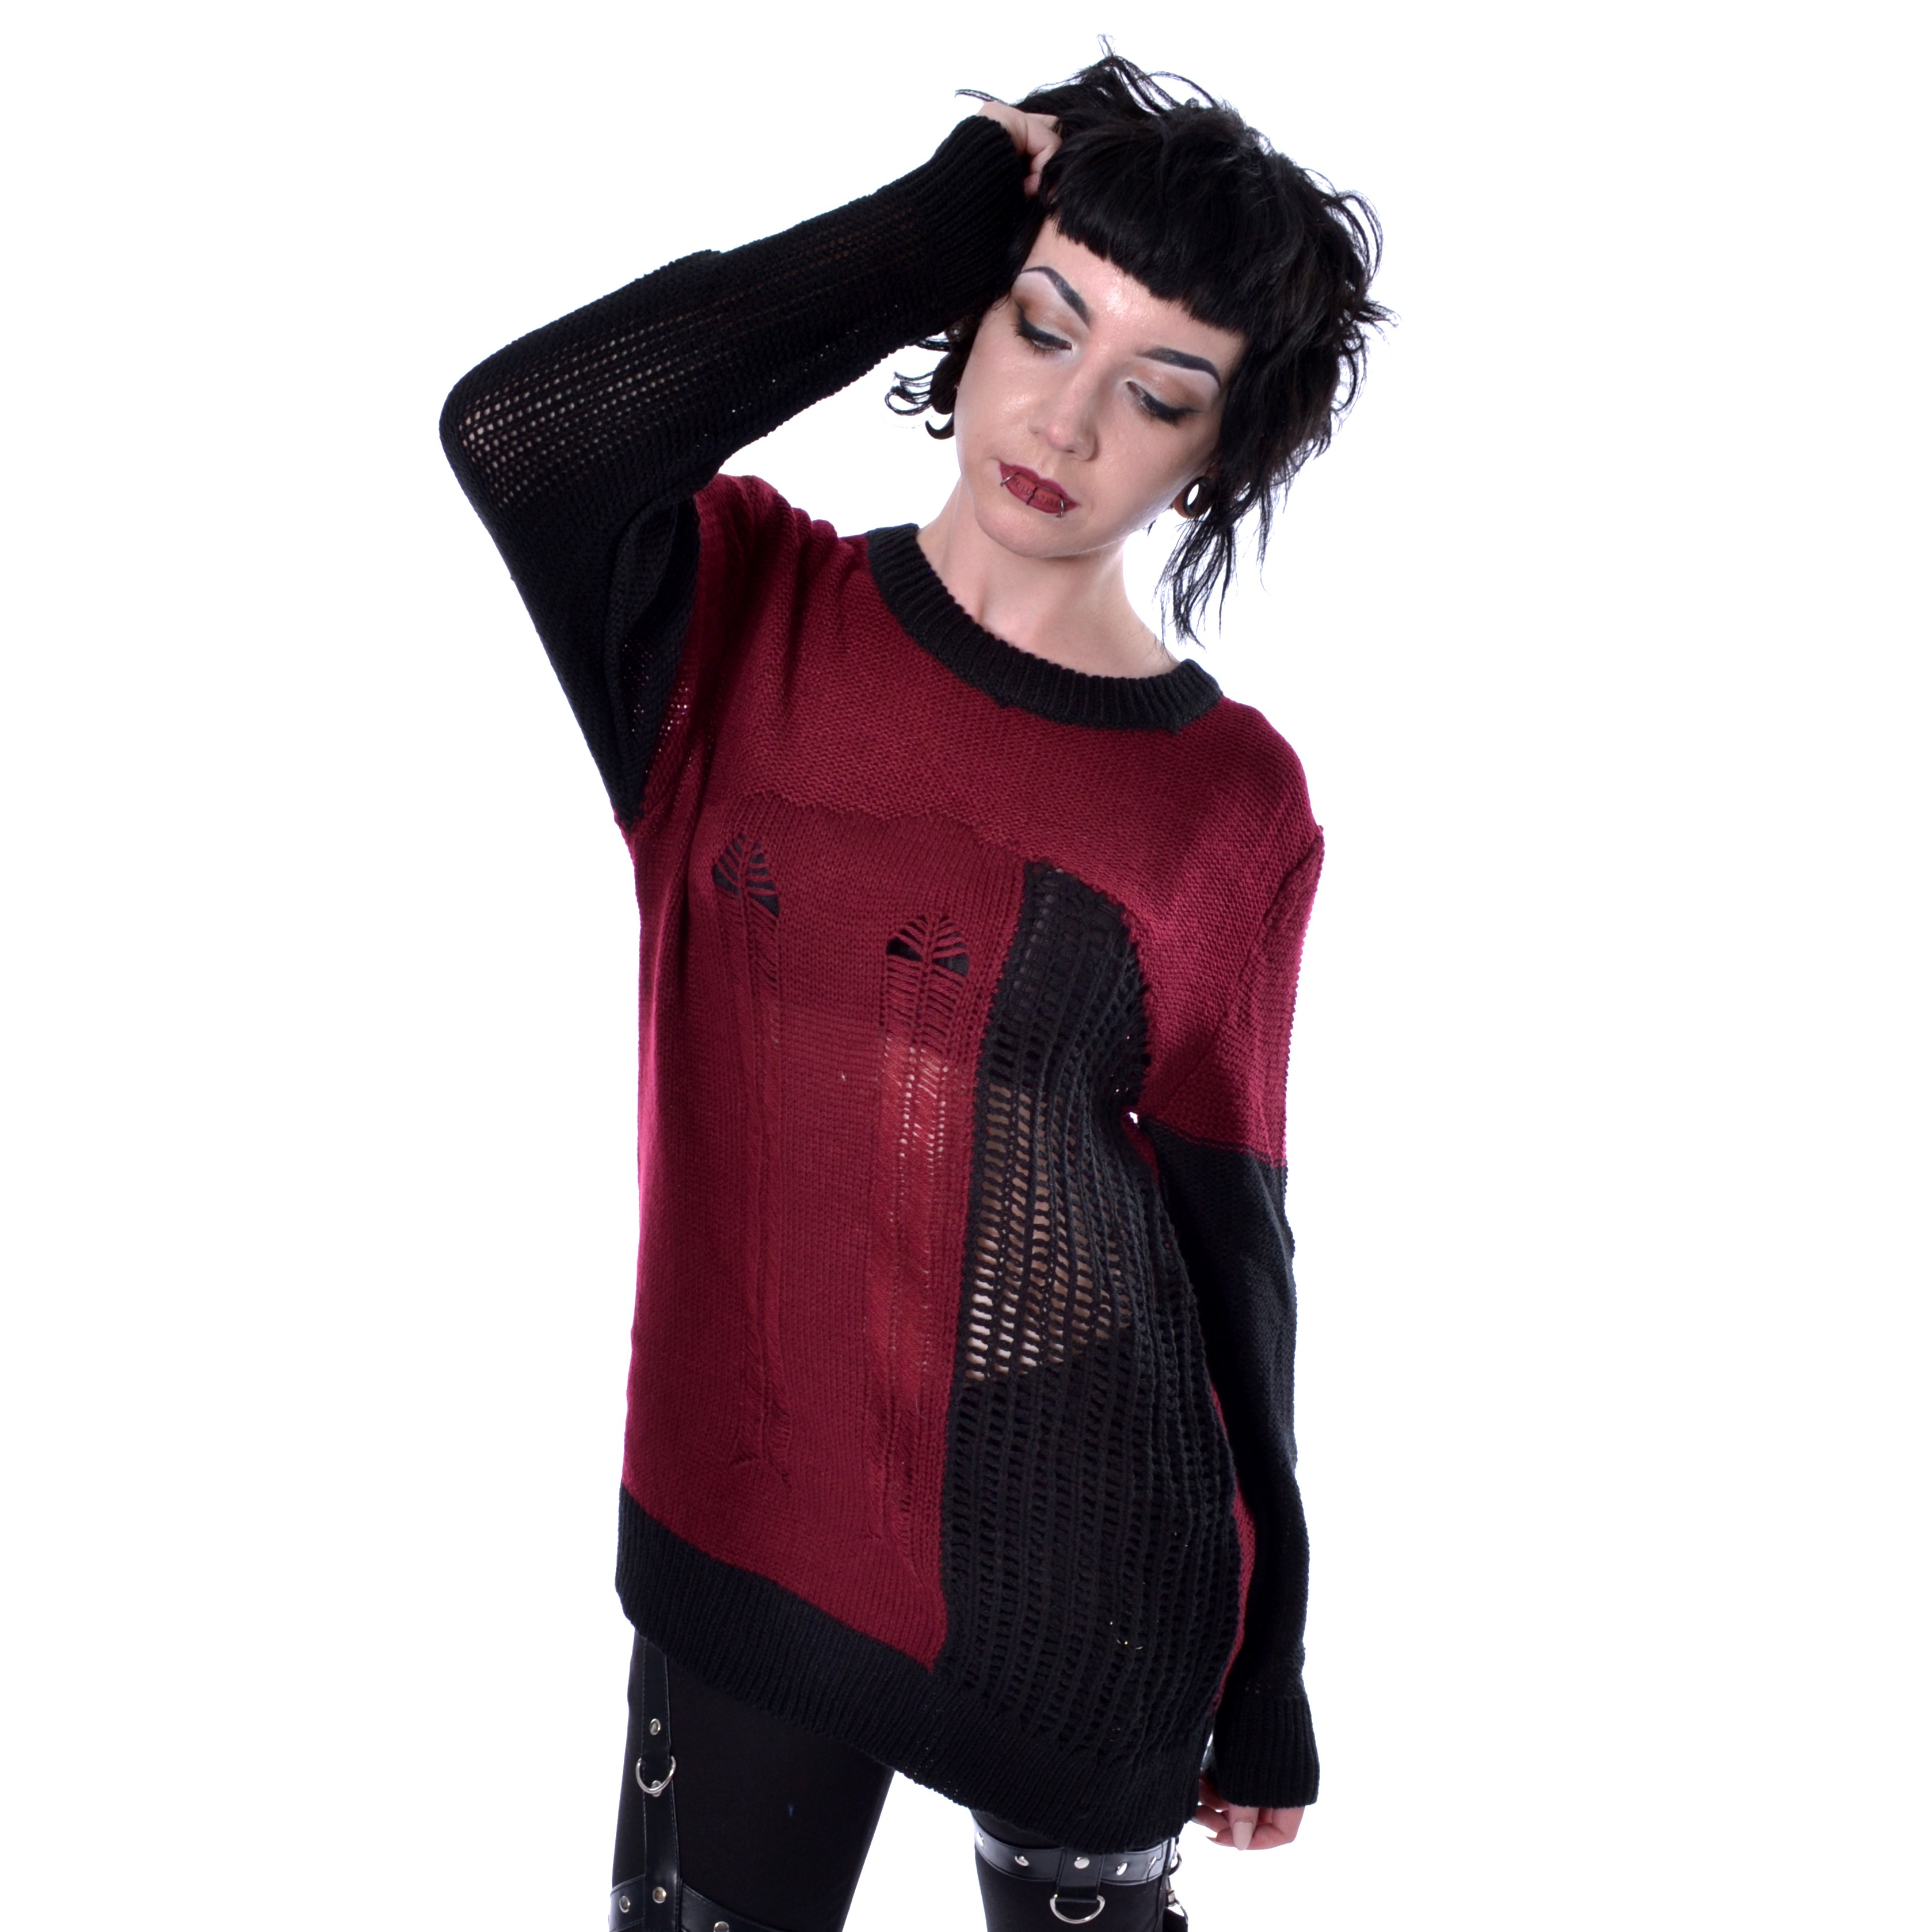 HEARTLESS - Fraction Top Ladies Black/Red *a1